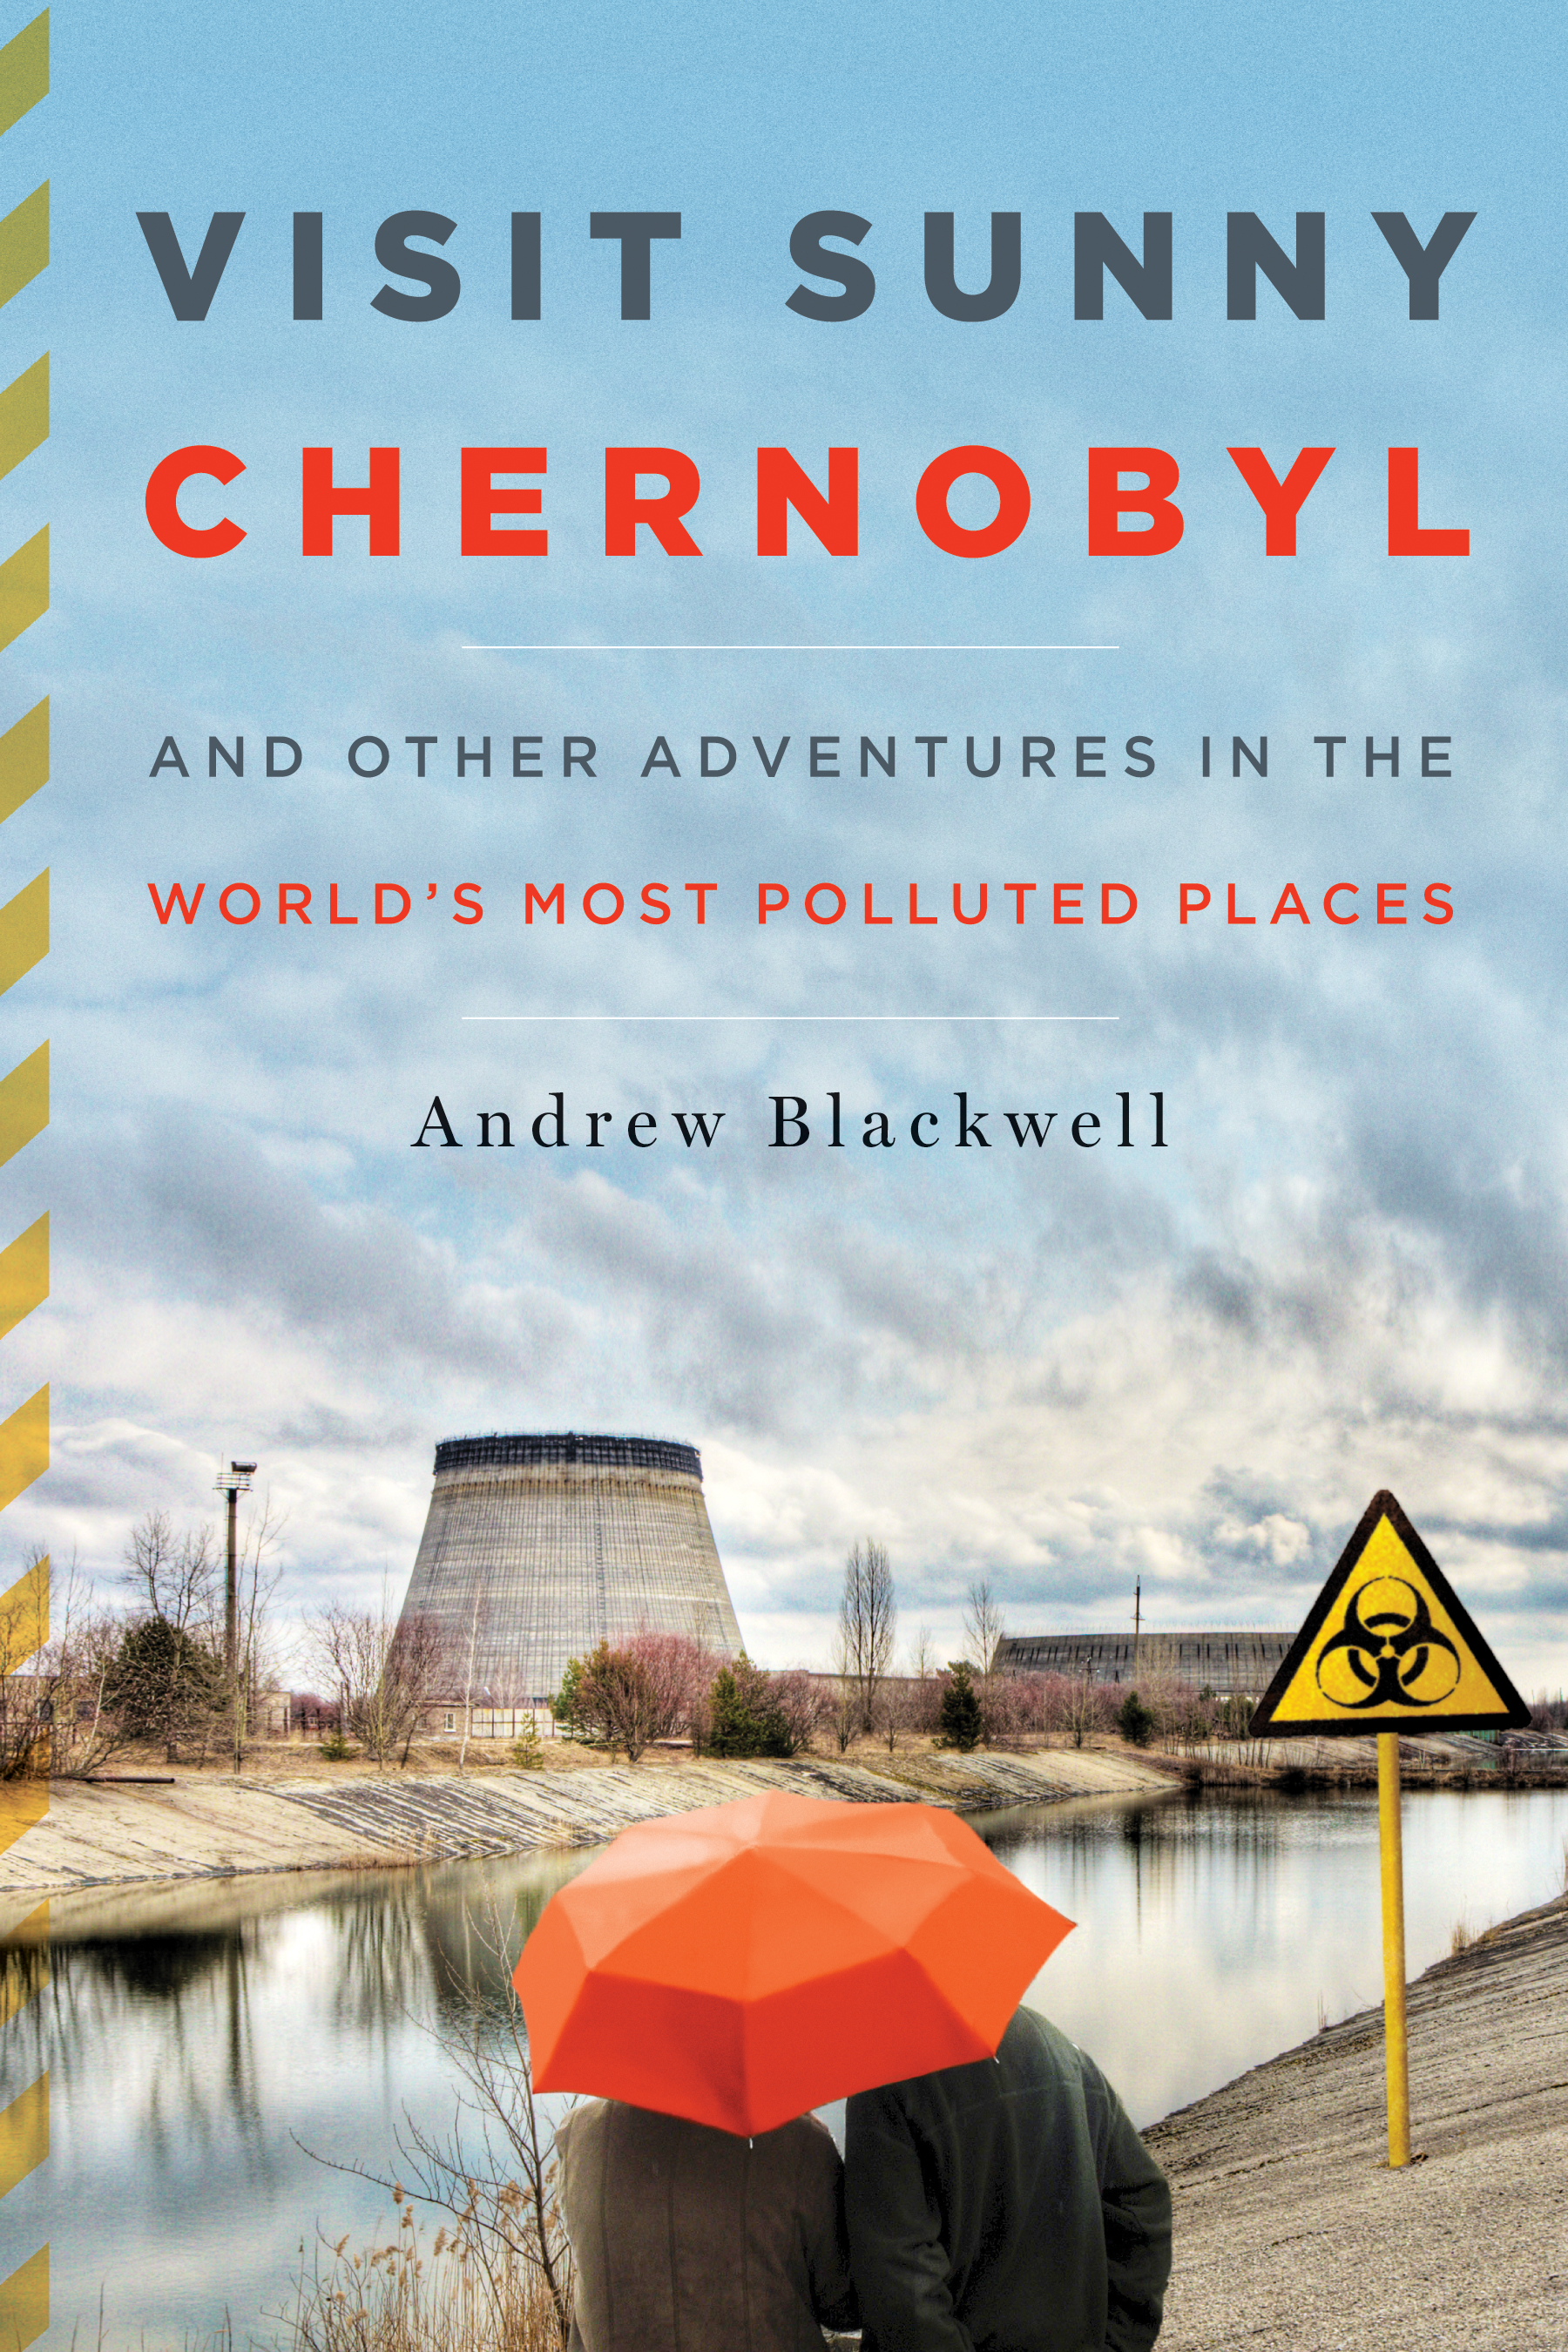 Visit Sunny Chernobyl: And Other Adventures in the World's Most Polluted Places By: Andrew Blackwell